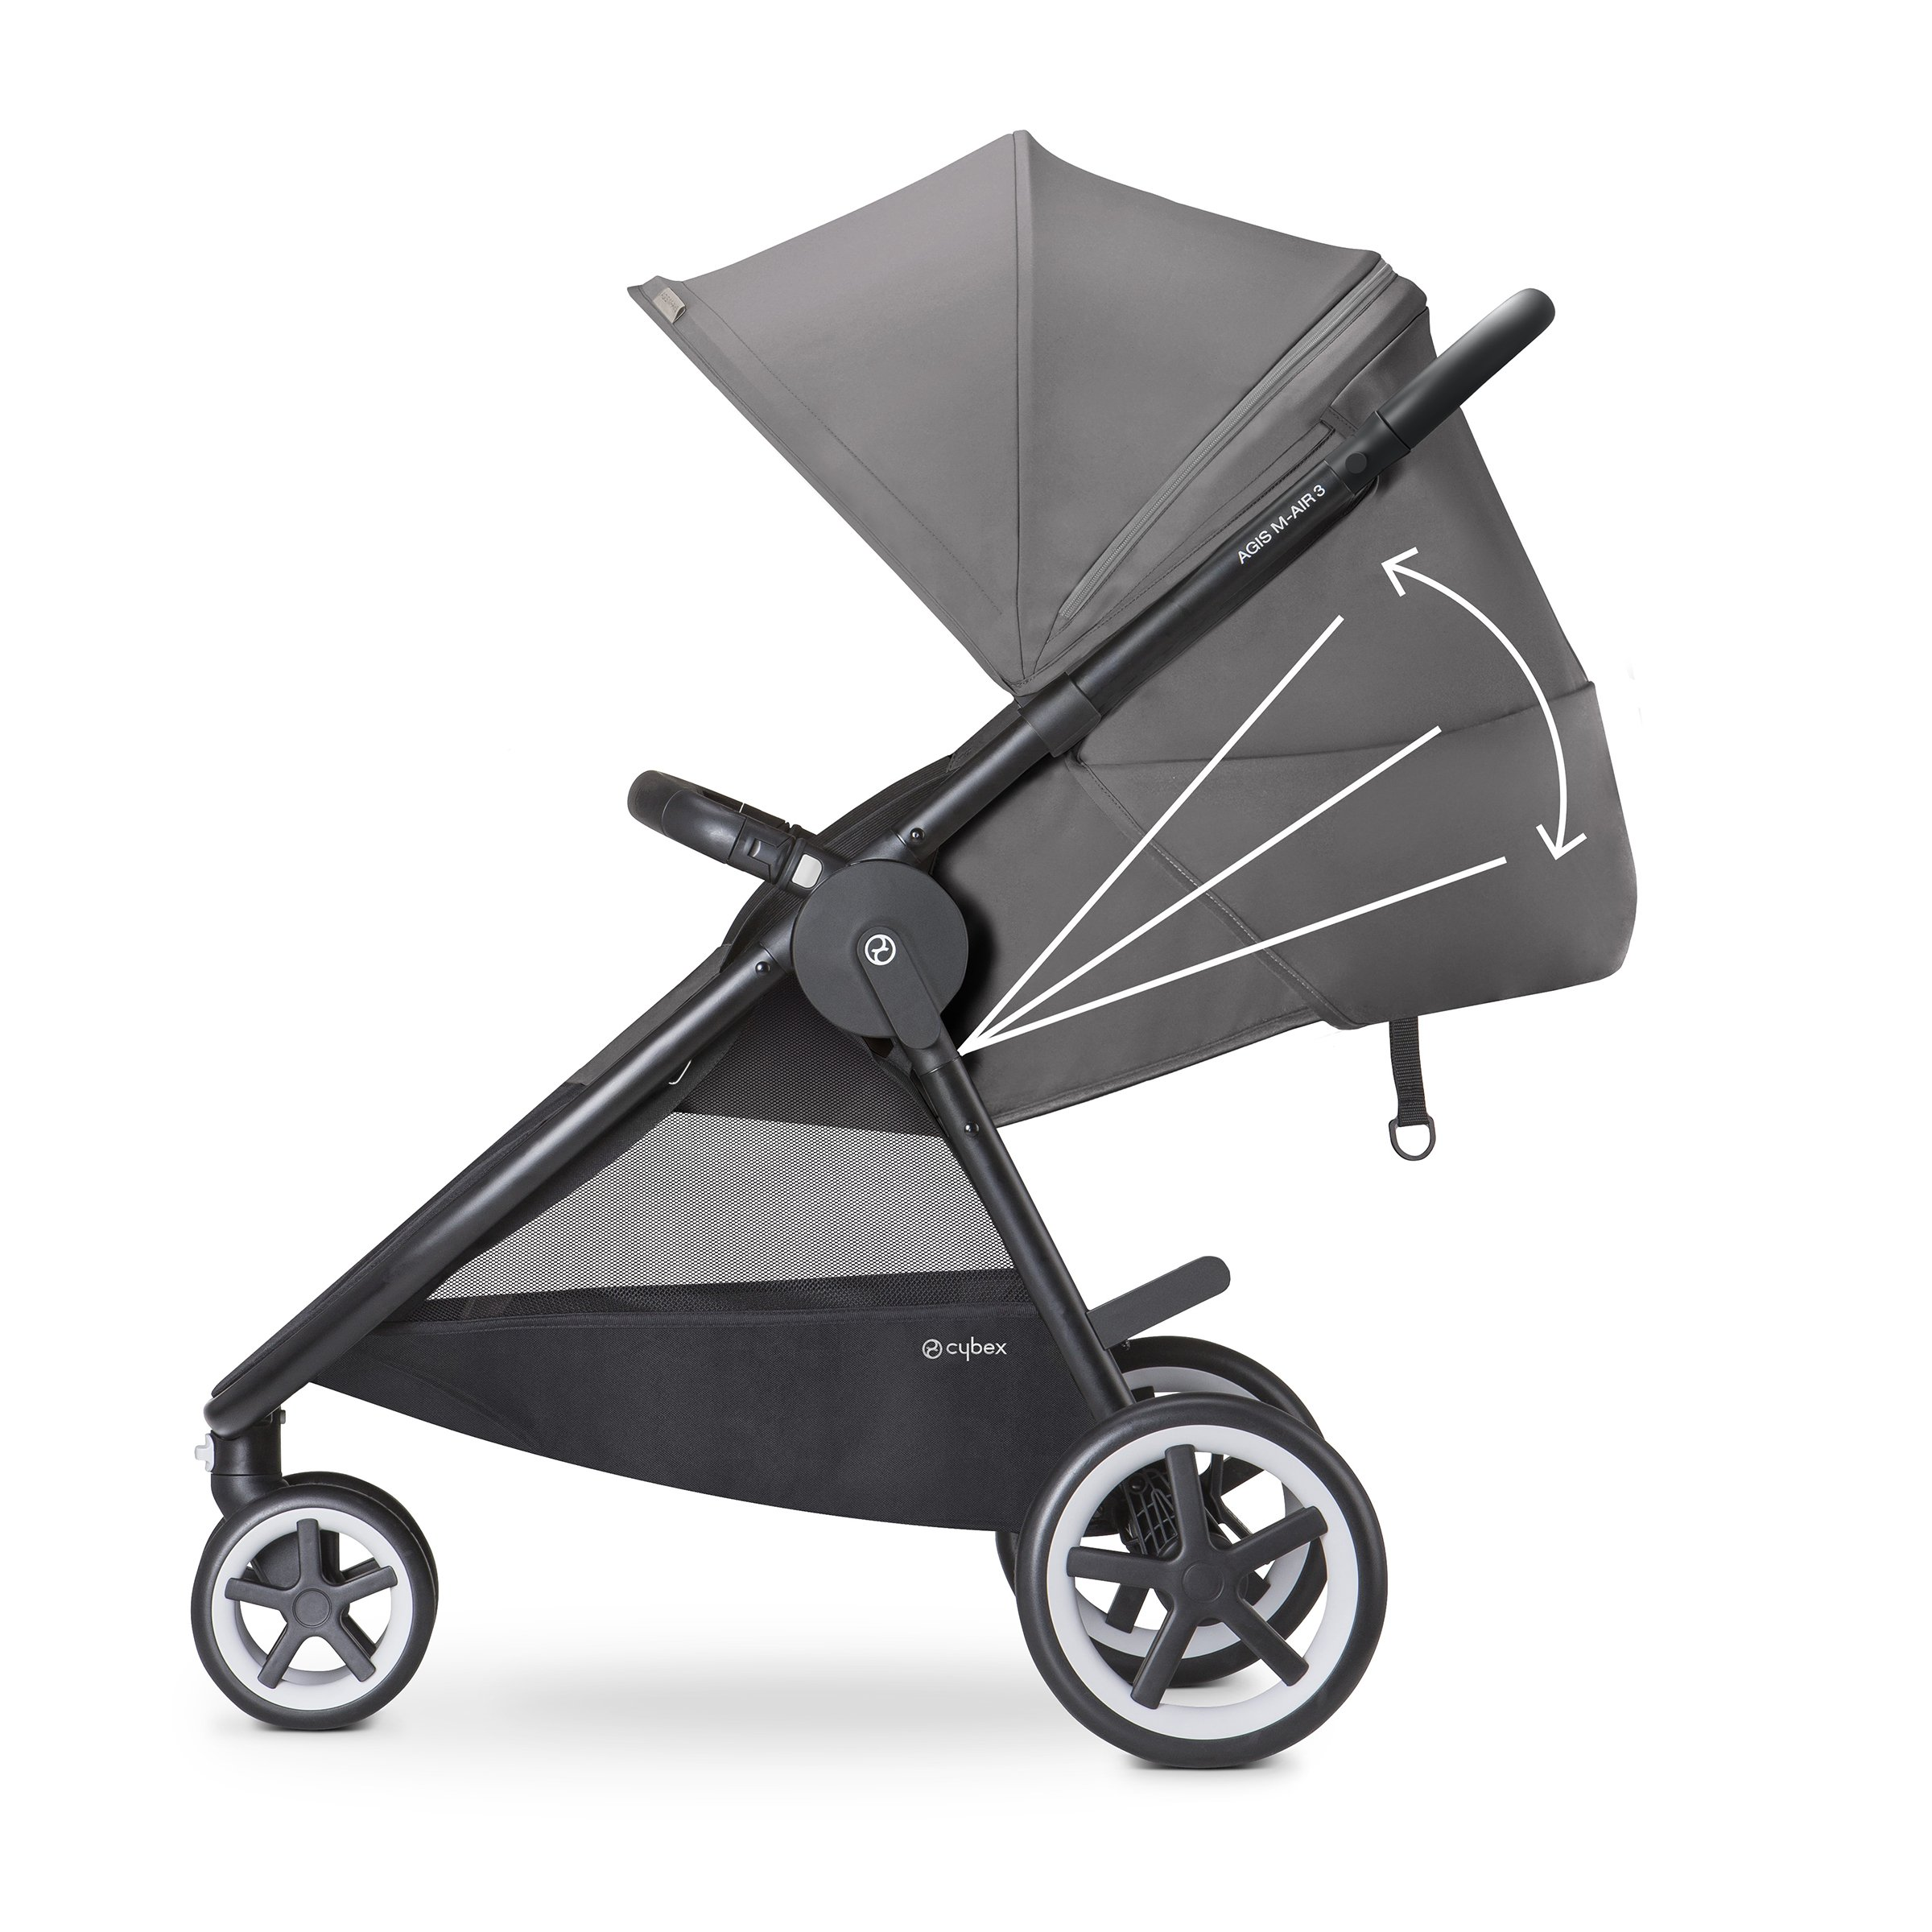 Cybex Agis M-Air 3/Aton/Aton Base Travel System, Moon Dust by Cybex (Image #4)